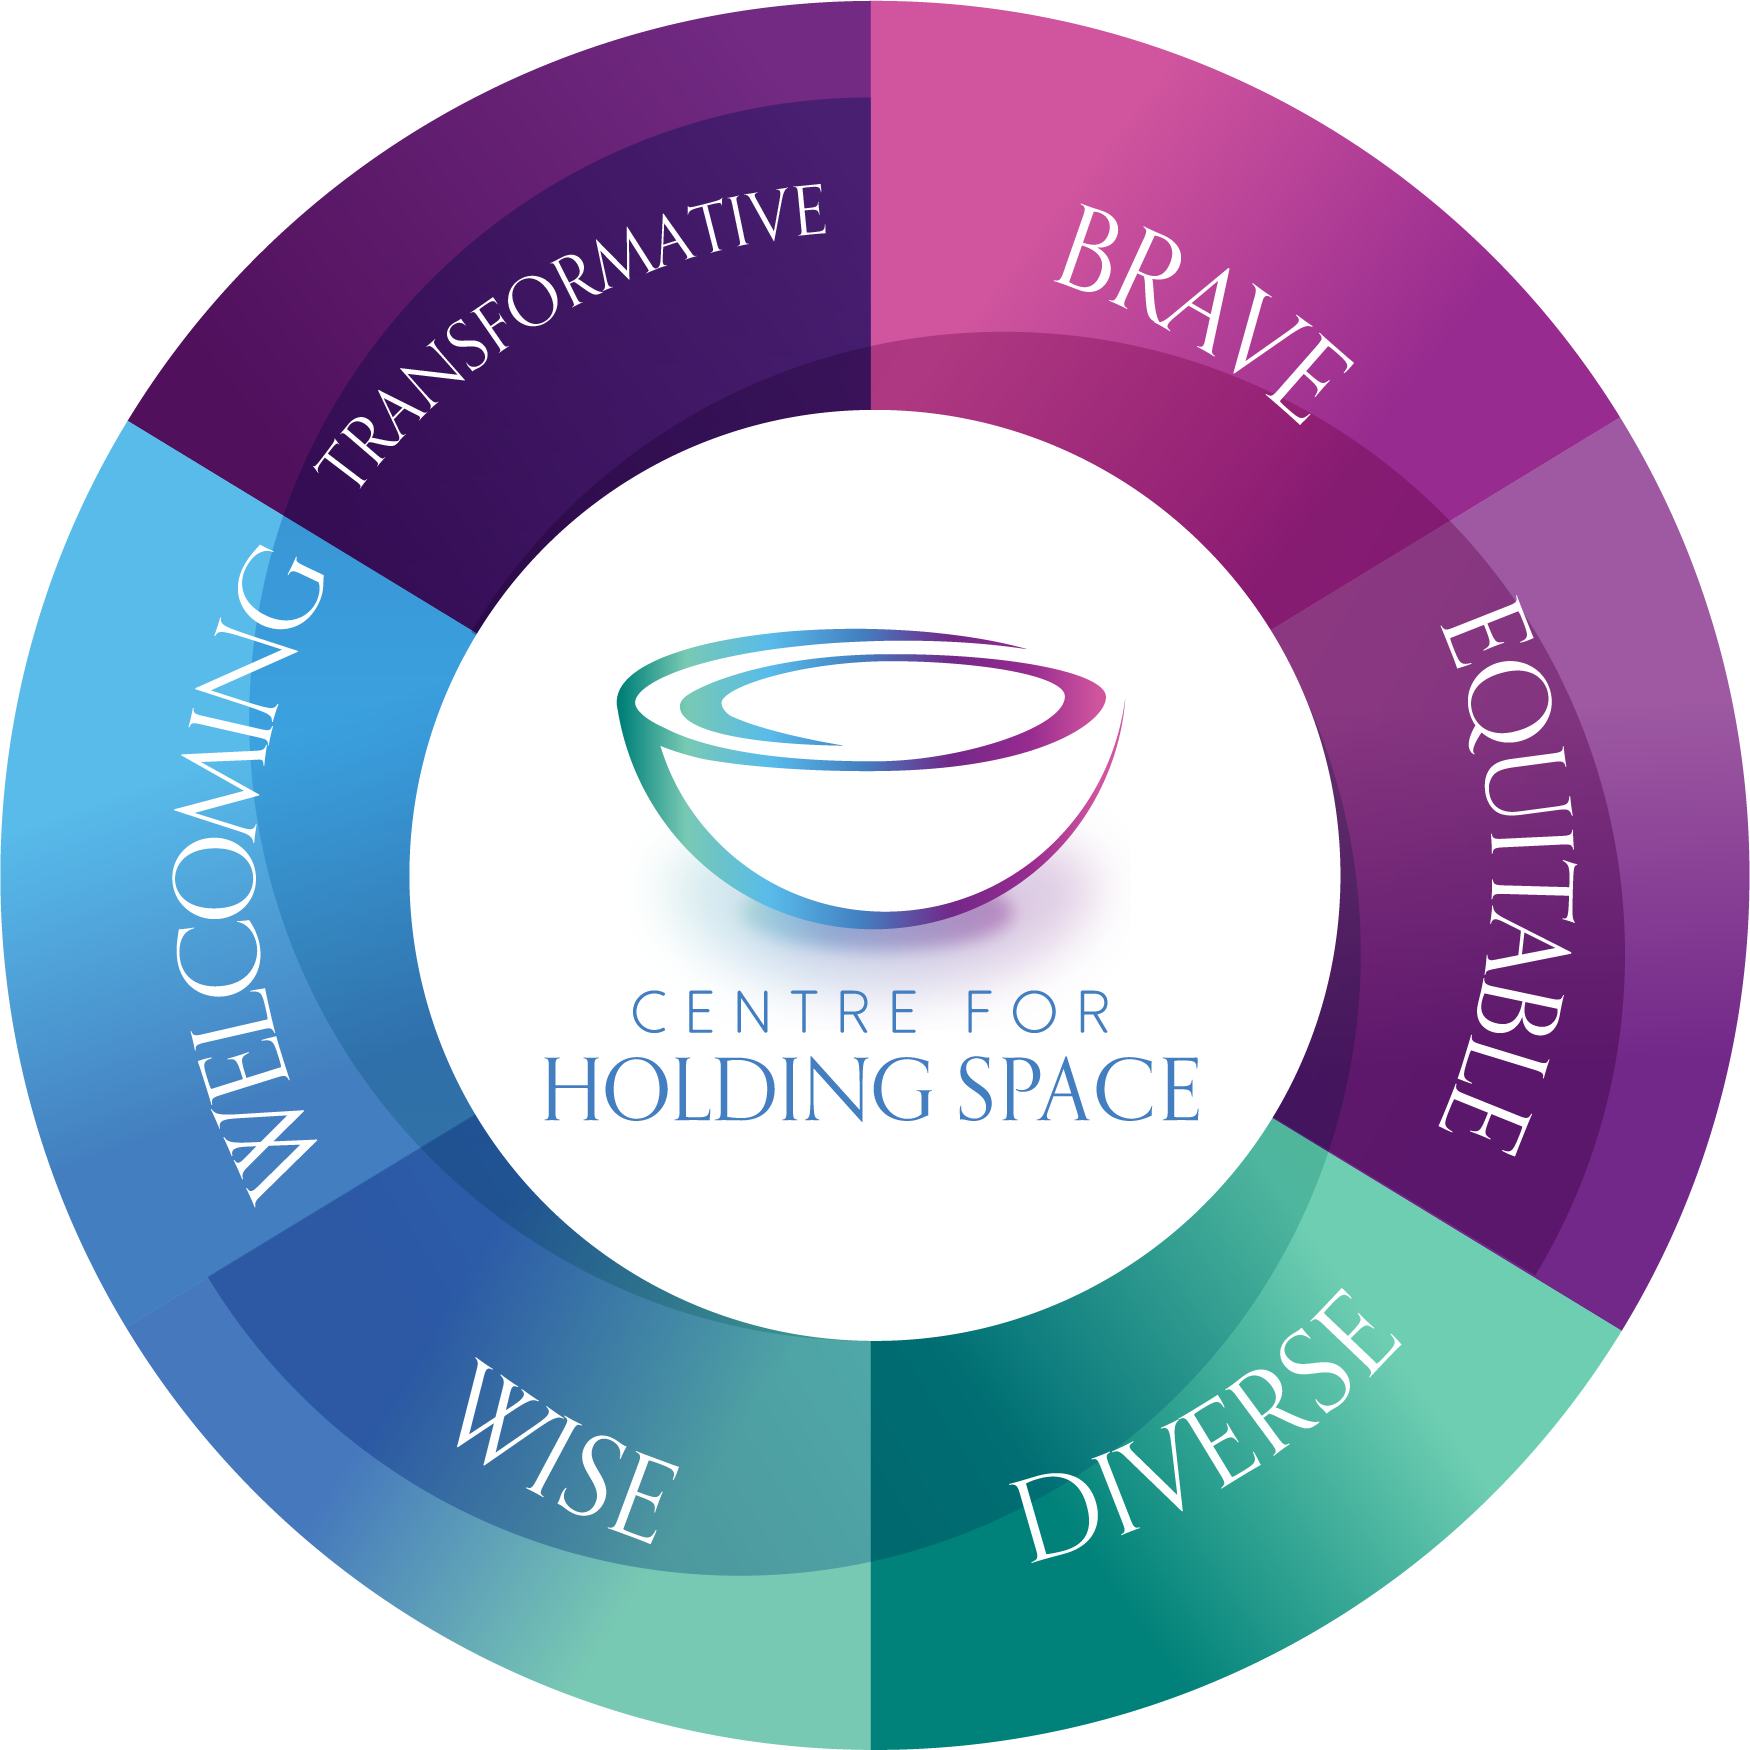 We Value Circle of Values for Centre for Holding Space